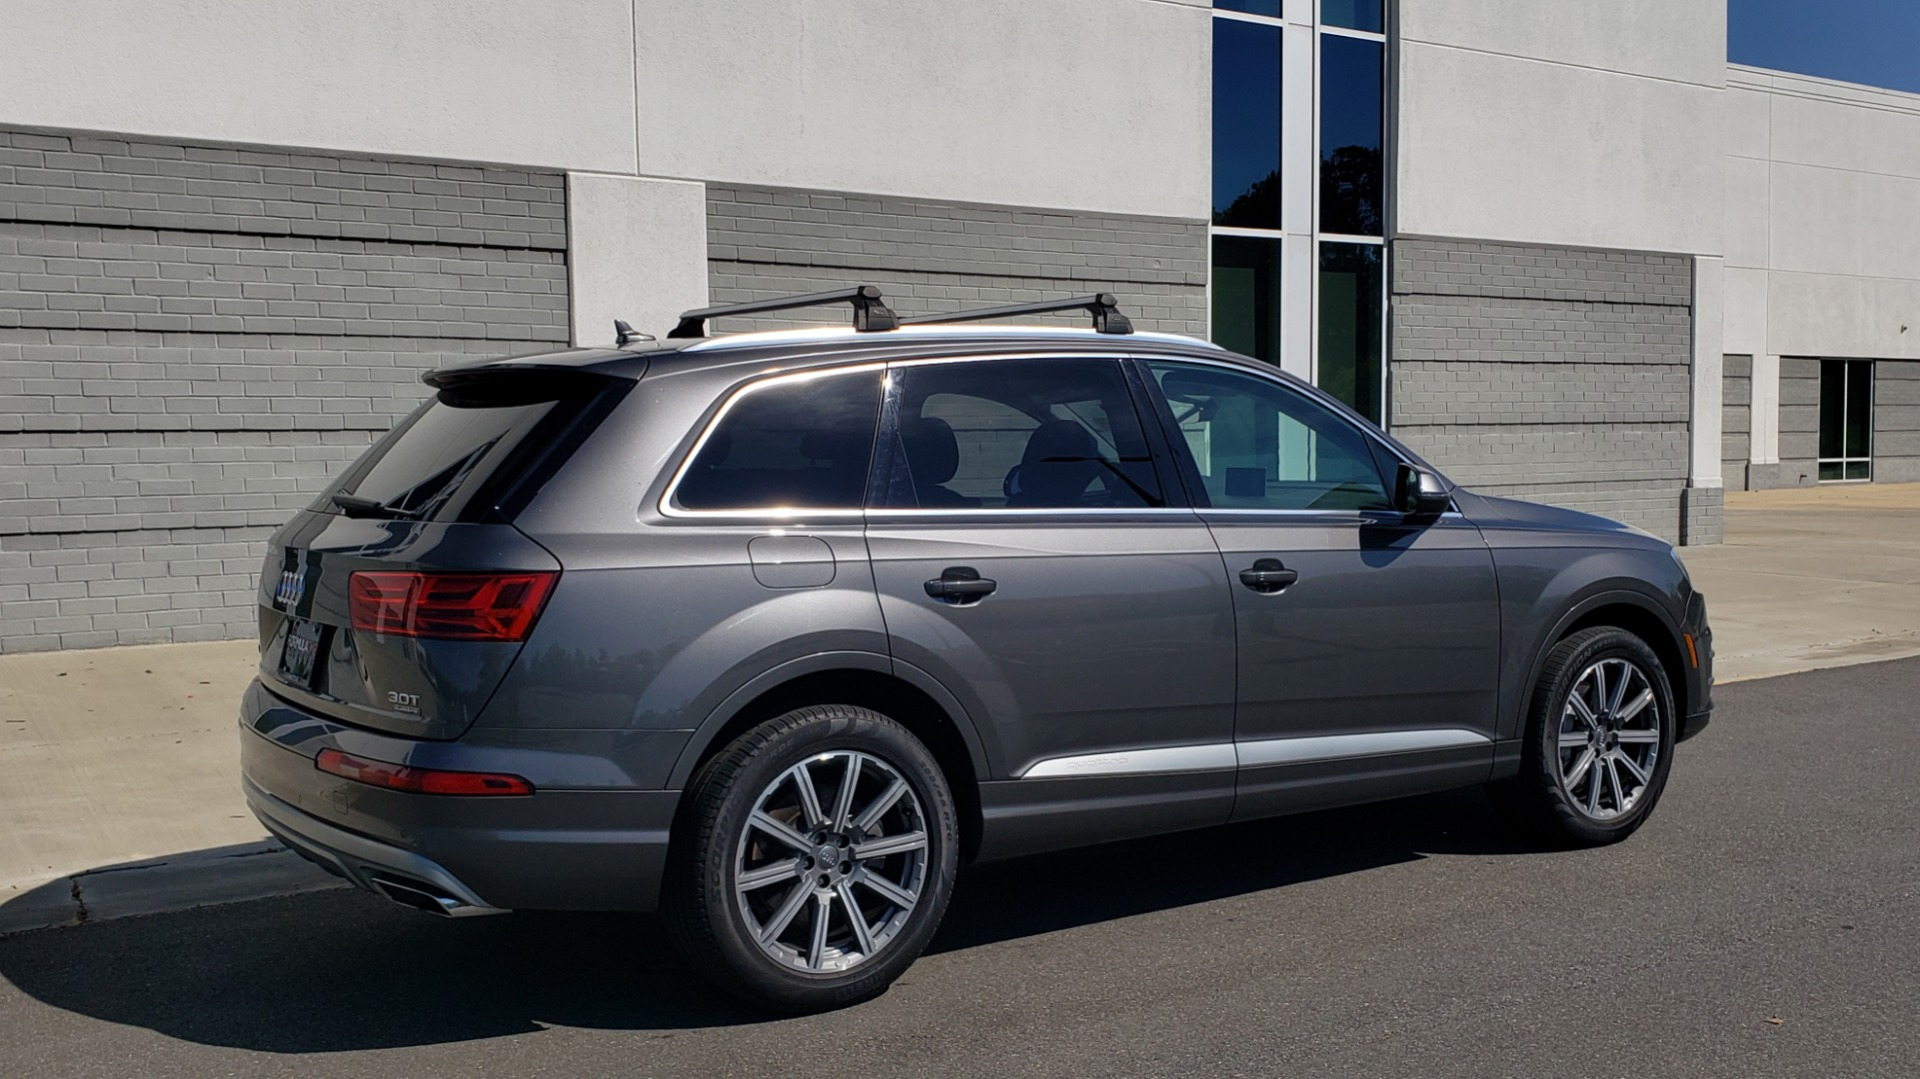 Used 2018 Audi Q7 PREMIUM PLUS TIPTRONIC / NAV / SUNROOF / VISION PKG / CLD WTHR / REARVIEW for sale $44,395 at Formula Imports in Charlotte NC 28227 8